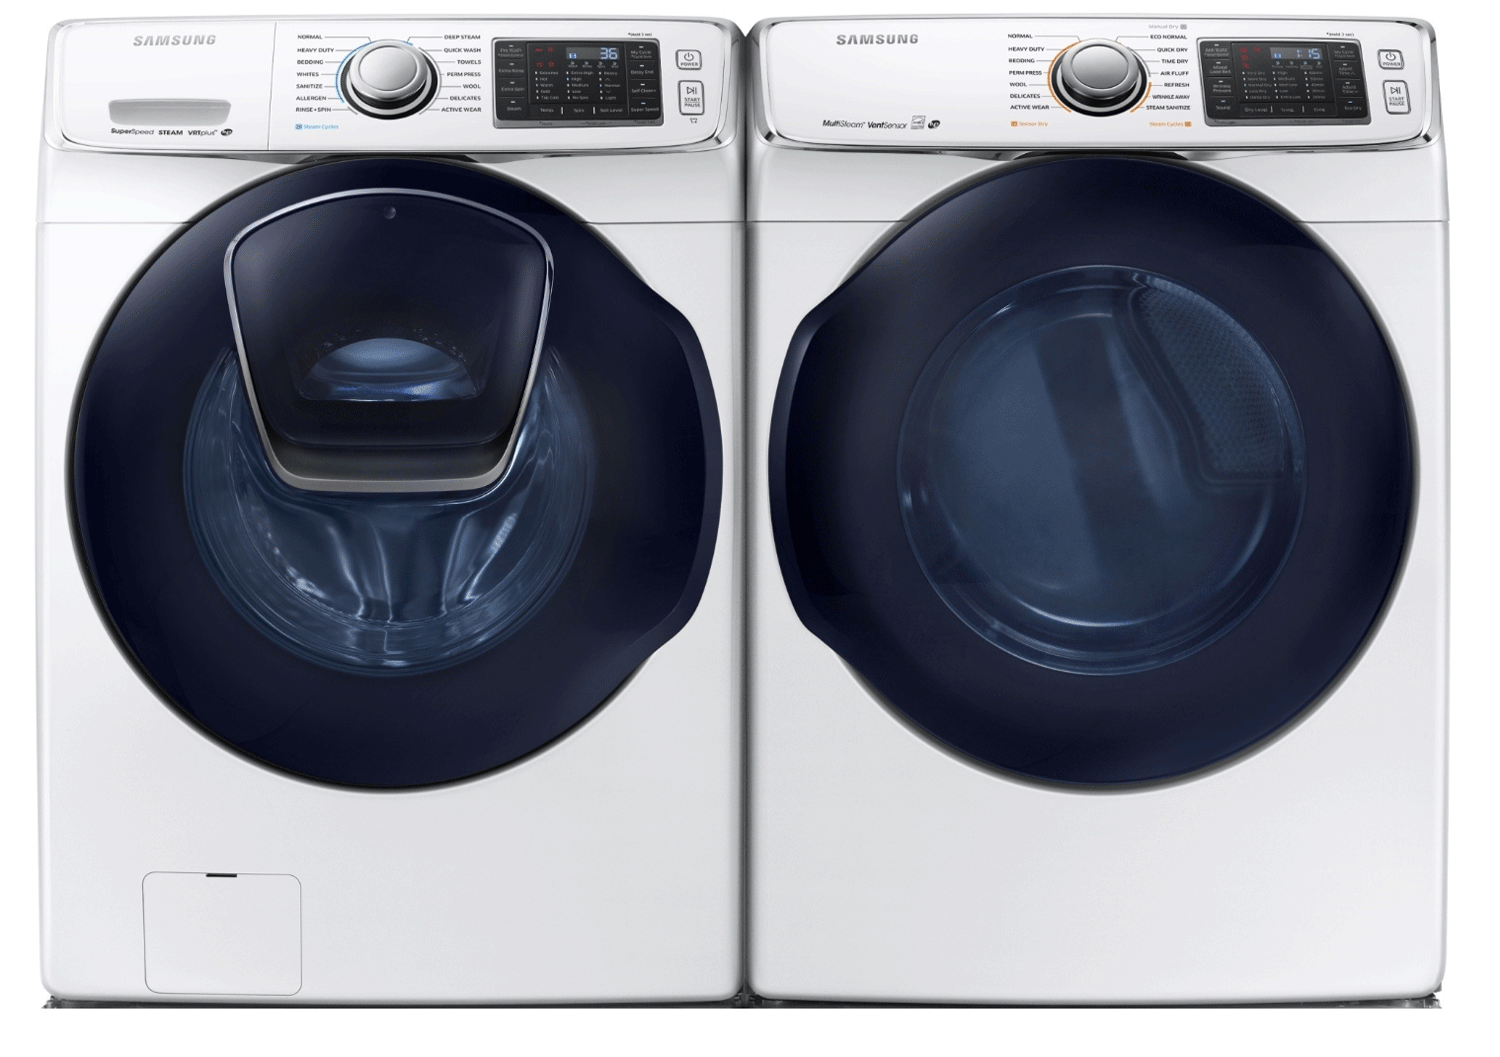 Best Washer and Dryer Deals of 2019 - Our Top 5 Picks